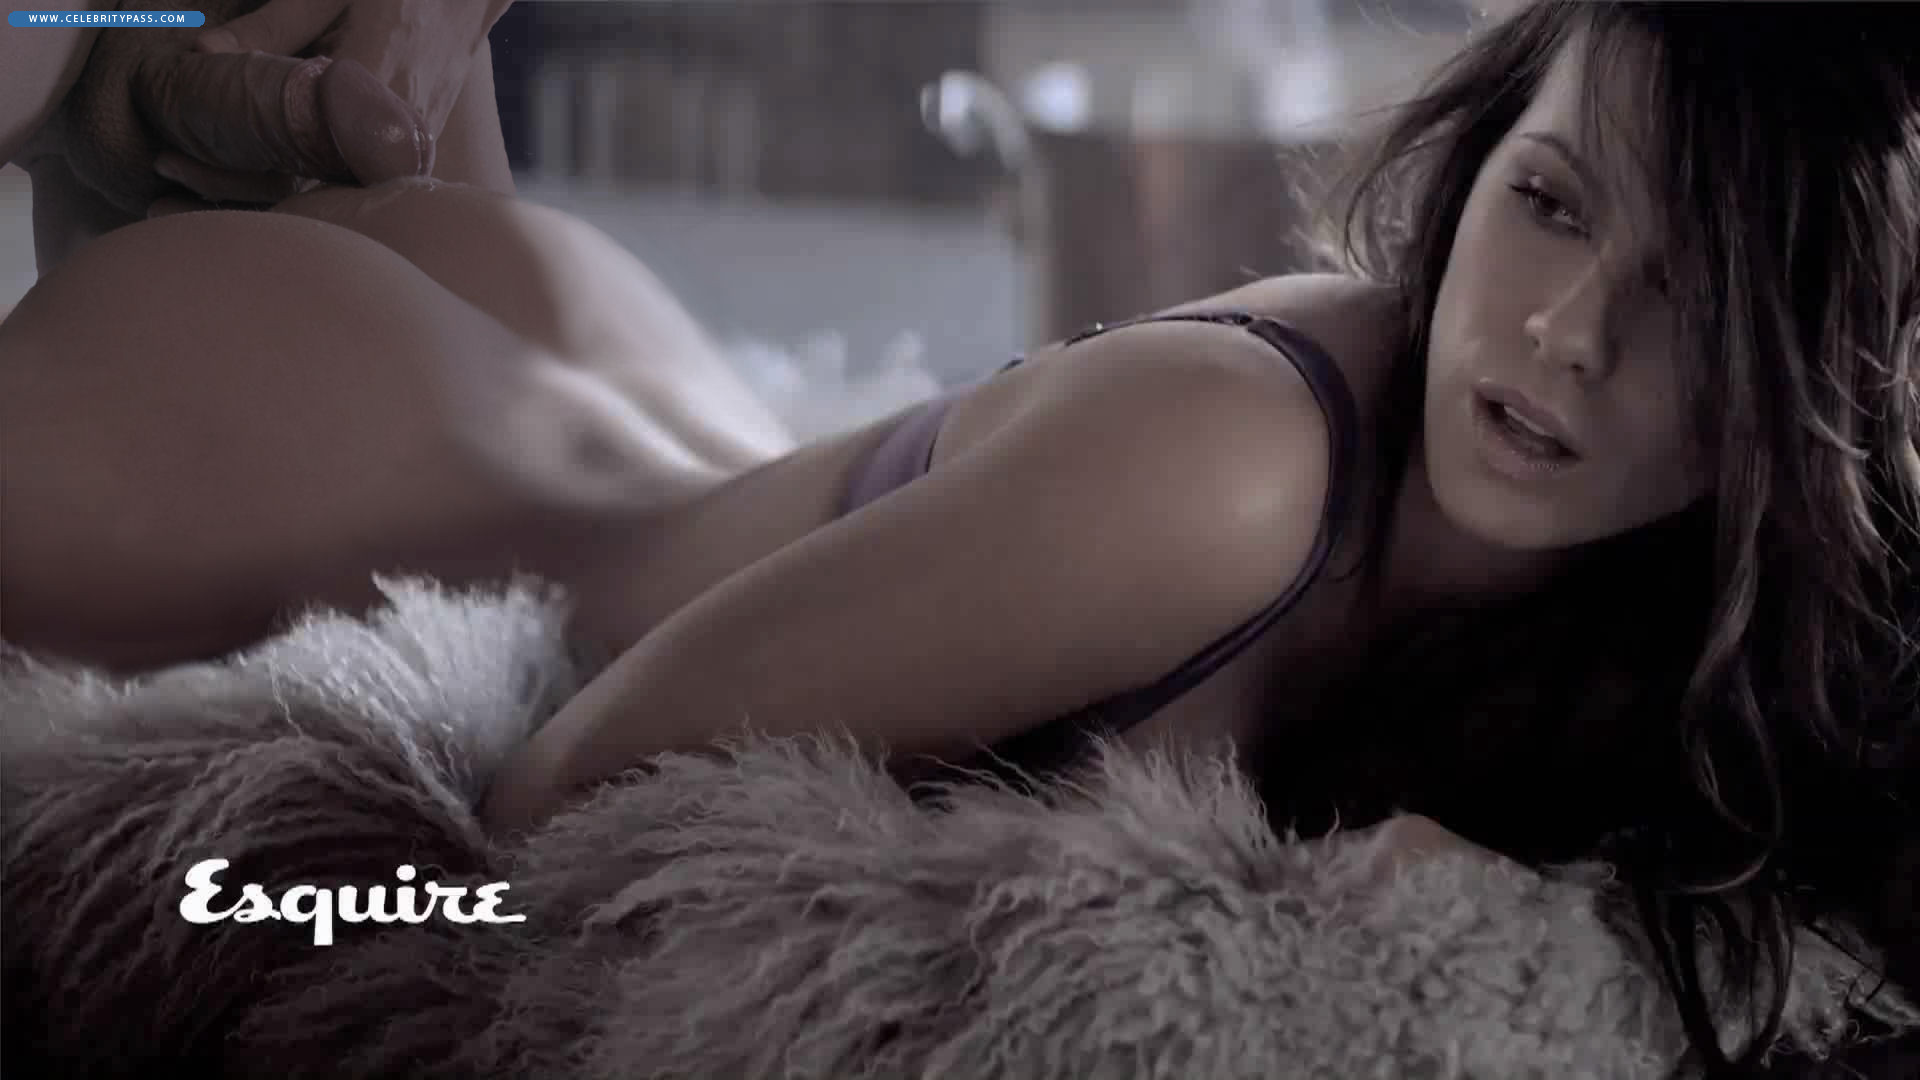 Kate beckinsale leaked photos tits Great.....love